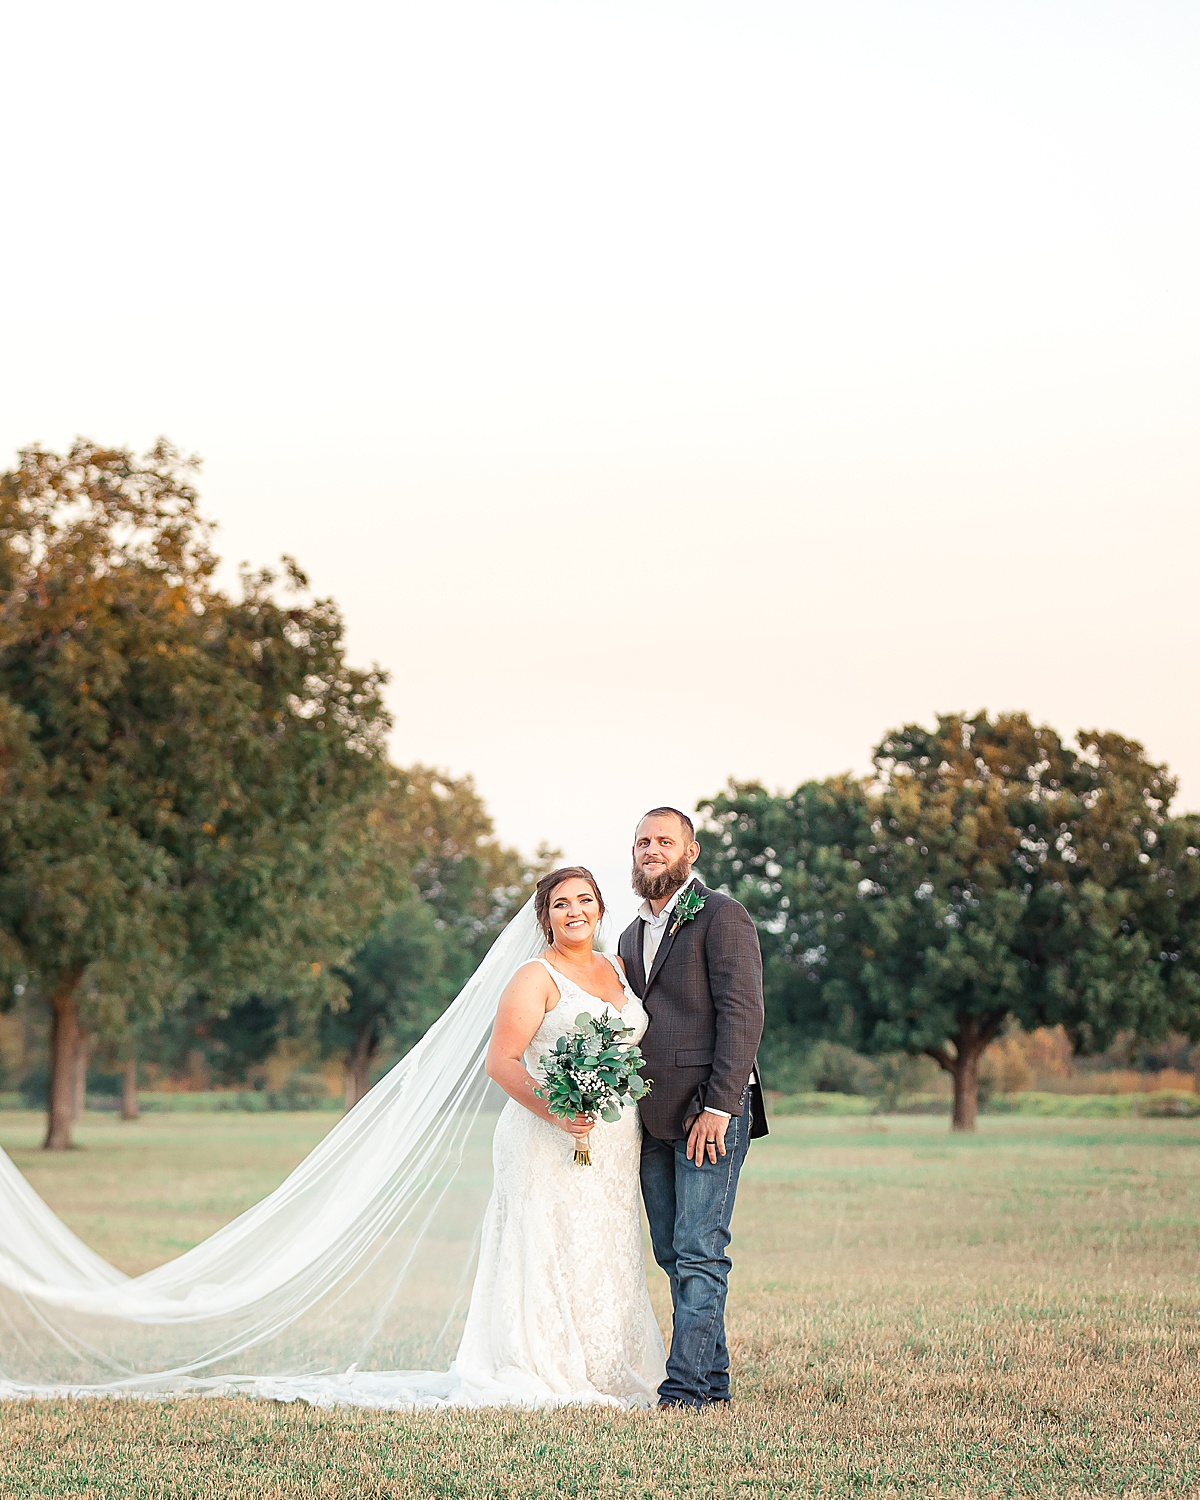 Rustic-Texas-Wedding-Hollow-Creek-Ranch-Carly-Barton-Photography_0096.jpg